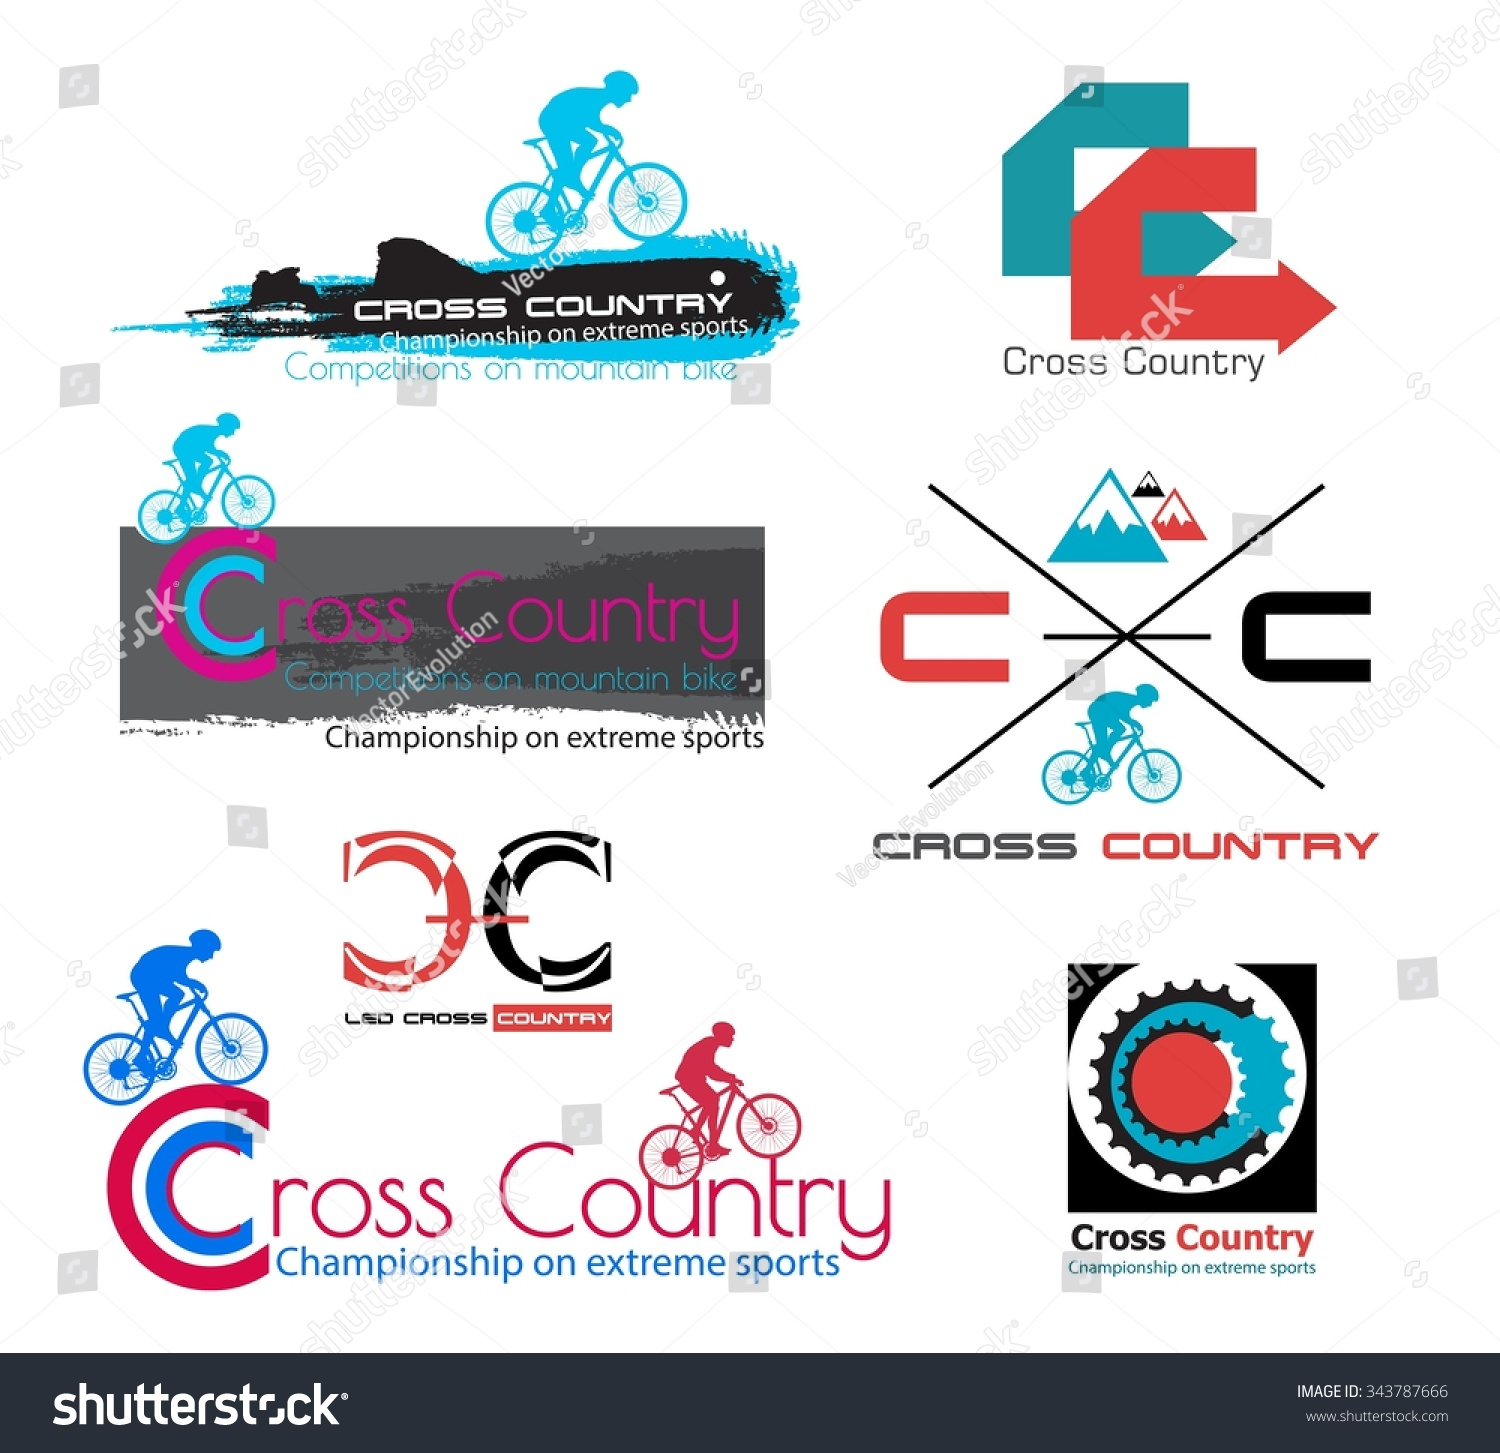 Cross country logo designs